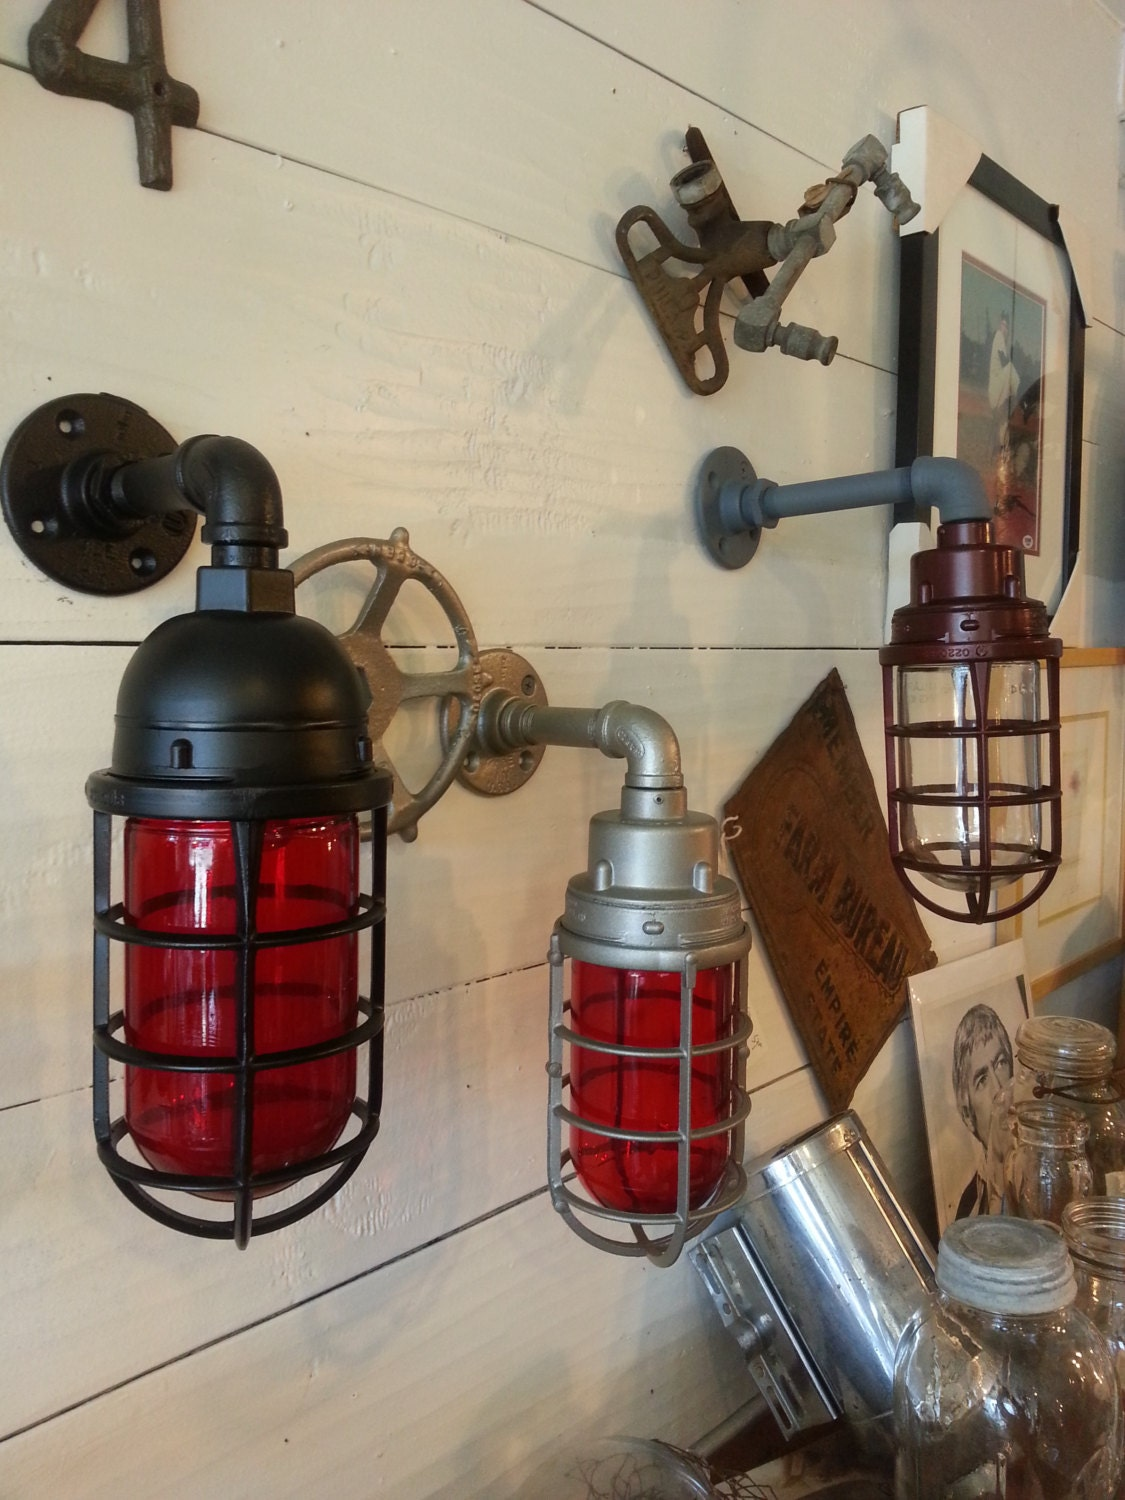 The Man Cave Store Appleton : Man cave indicator light blast proof industrial sconce